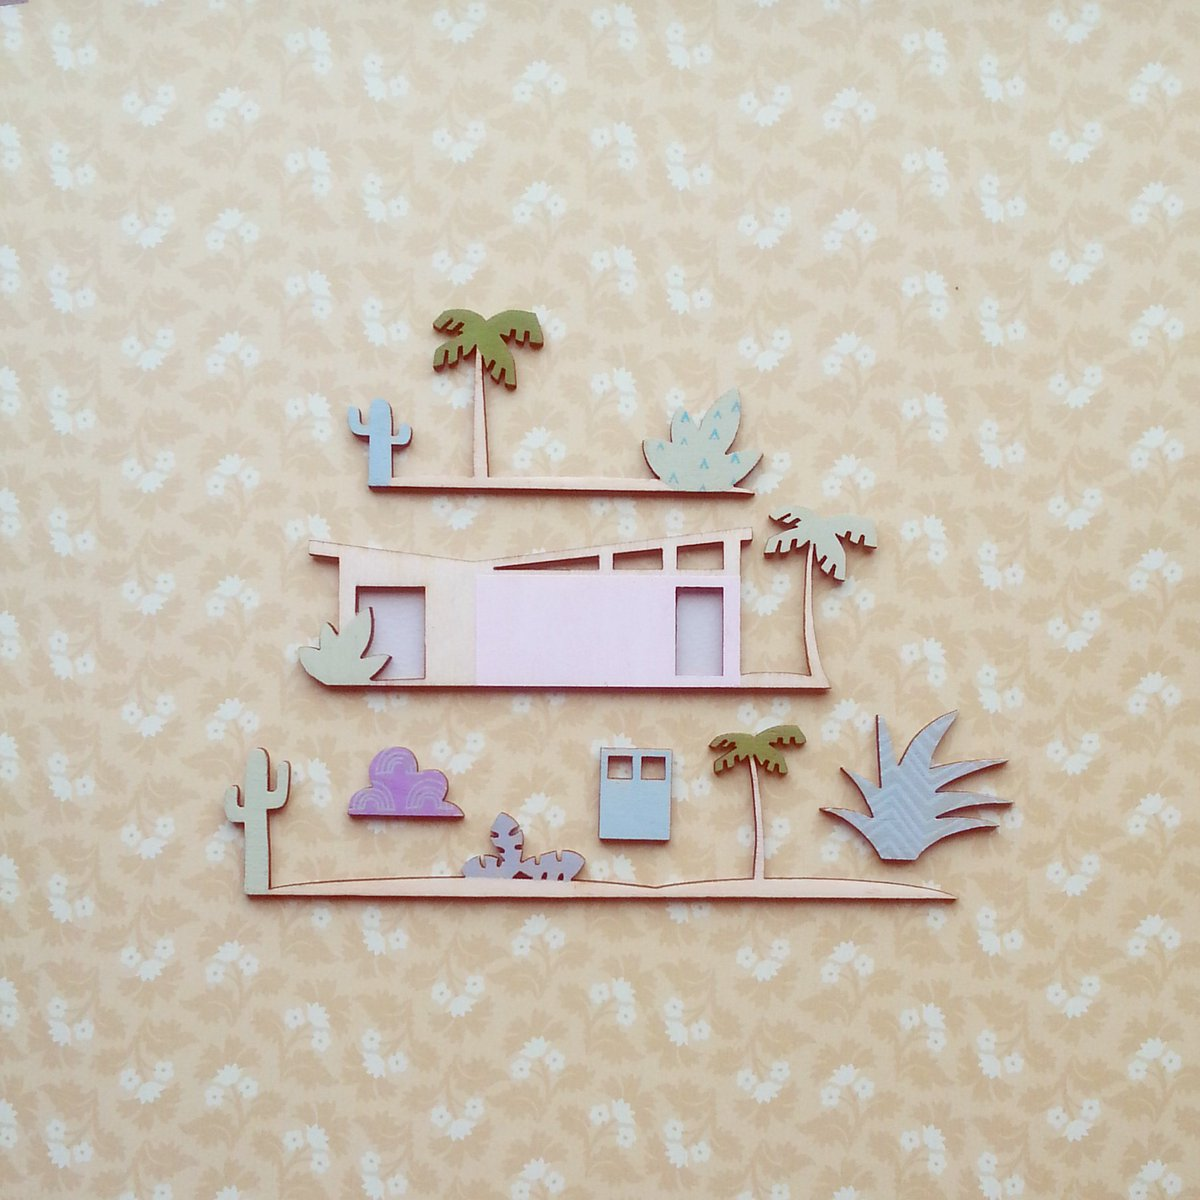 Cheeky wee mid century number on the table today #abk #midcentury #palmtrees #cactus #dinkydiorama #dominodiorama #midcenturyarchitecture<br>http://pic.twitter.com/k1UGE39tLr